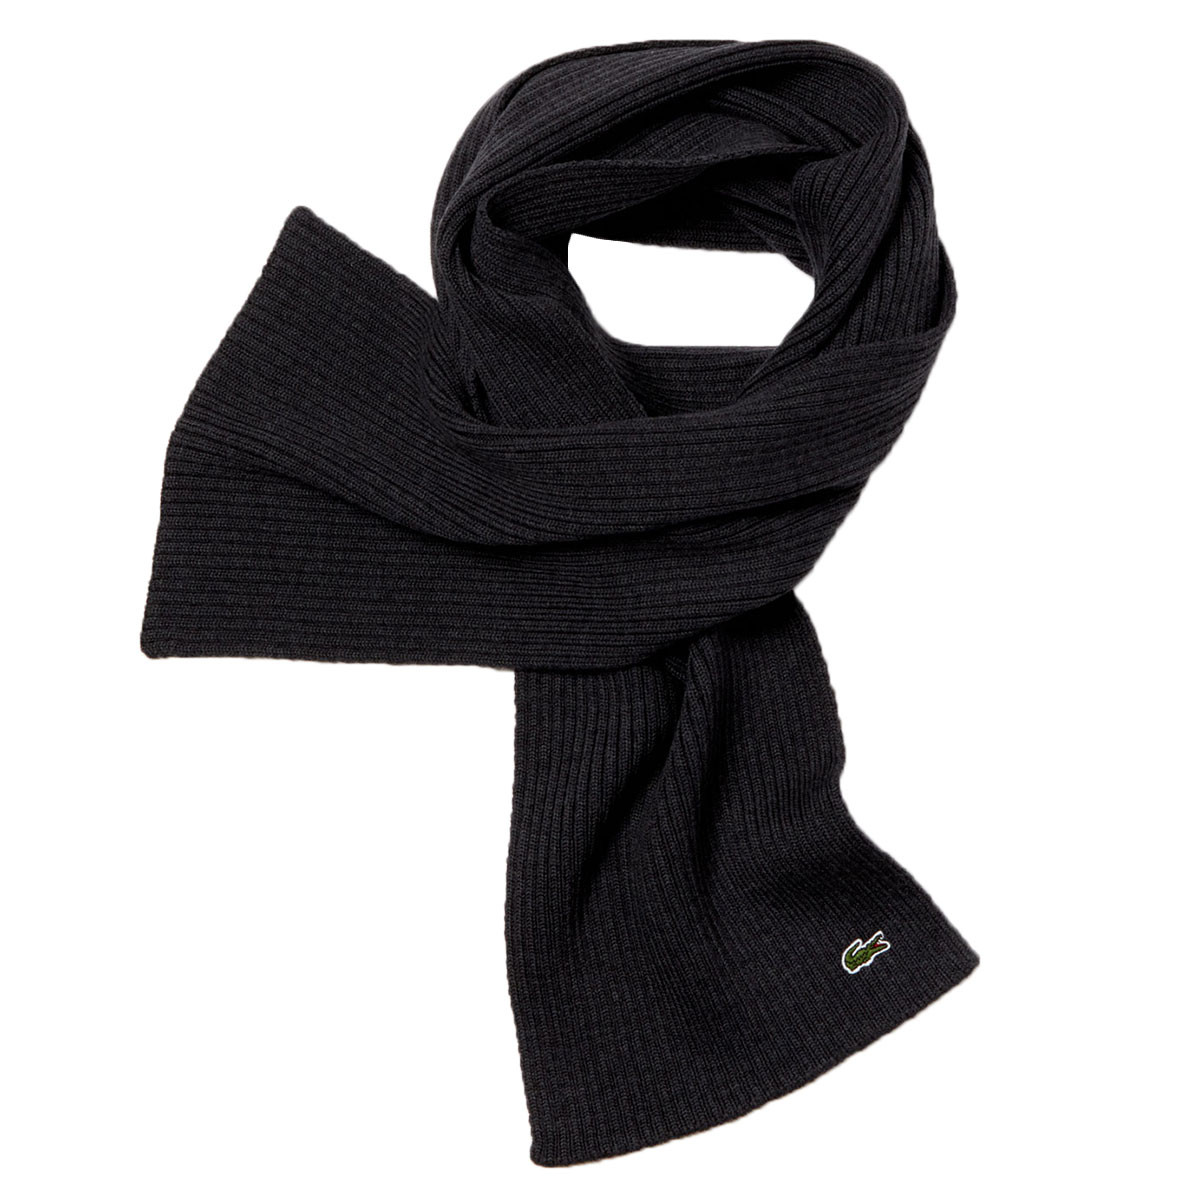 7aeab07f3 Lacoste Unisex 2019 Plain Wool Scarf Classic Smart Scarves - Scarves ...